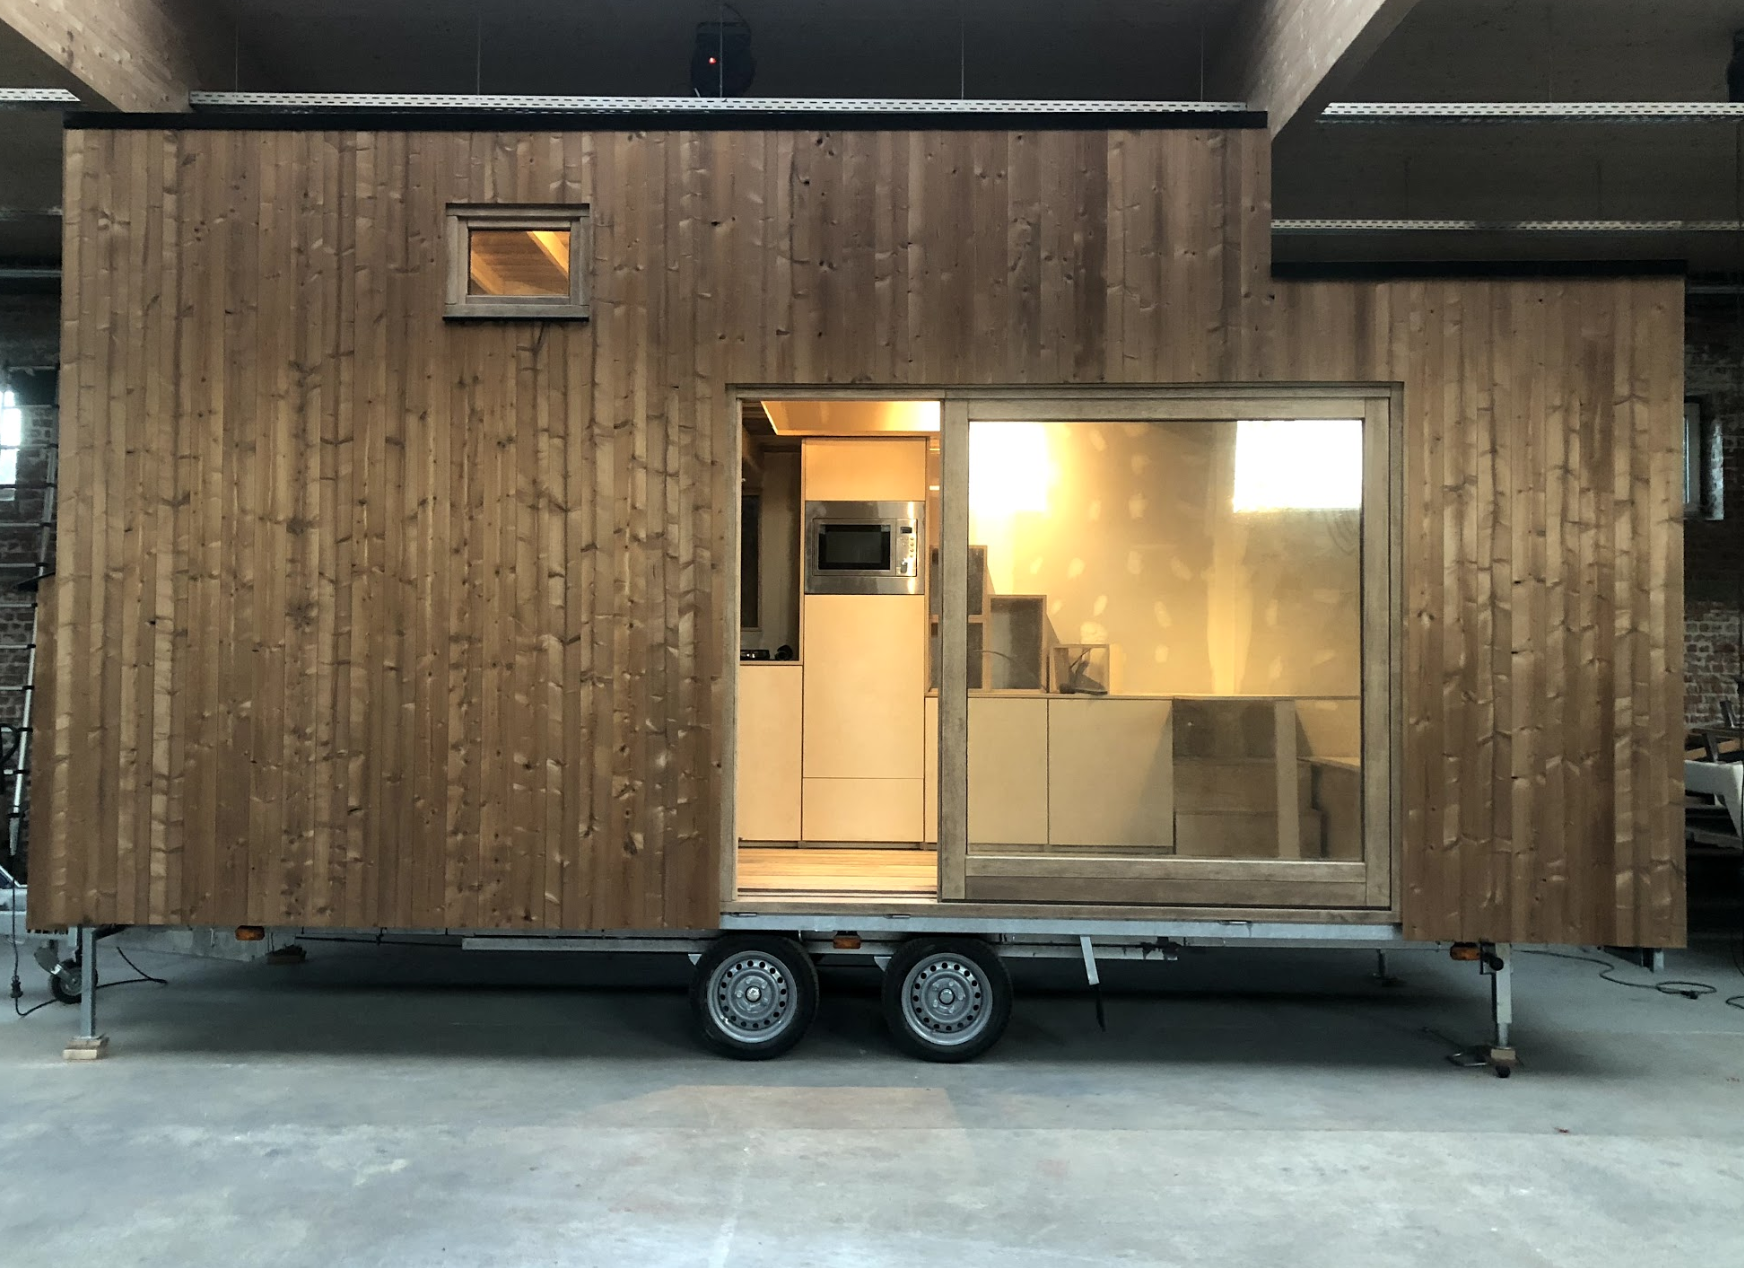 STAMART TINY HOUSE - Now officially for sale.